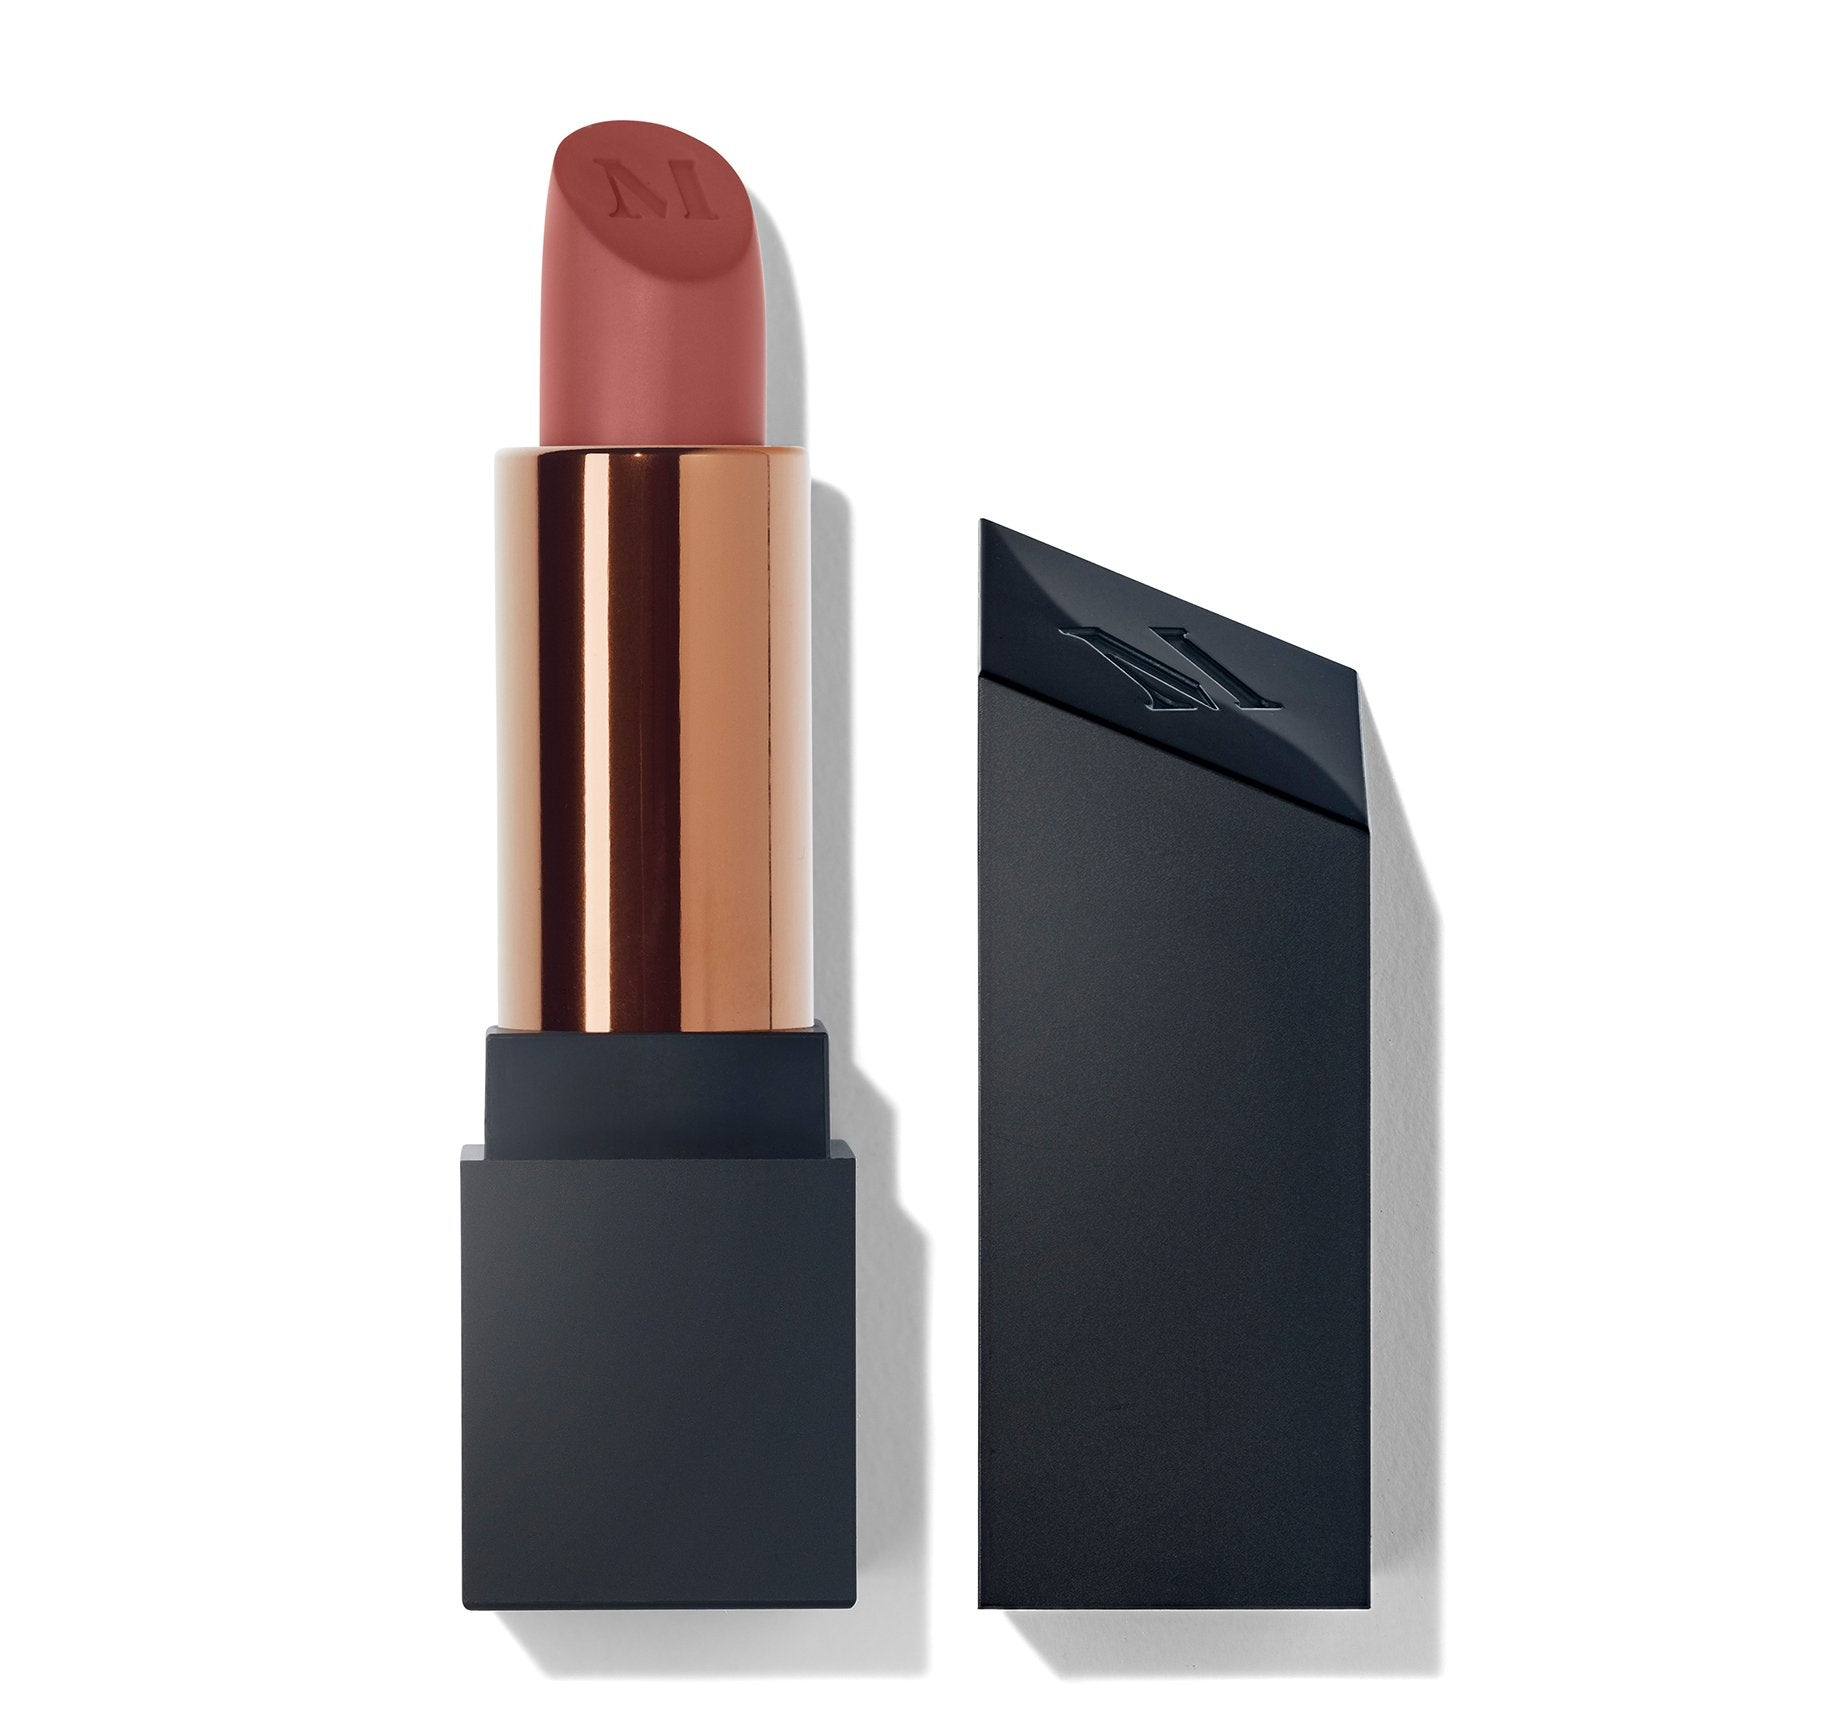 MEGA MATTE LIPSTICK - THE TALK, view larger image